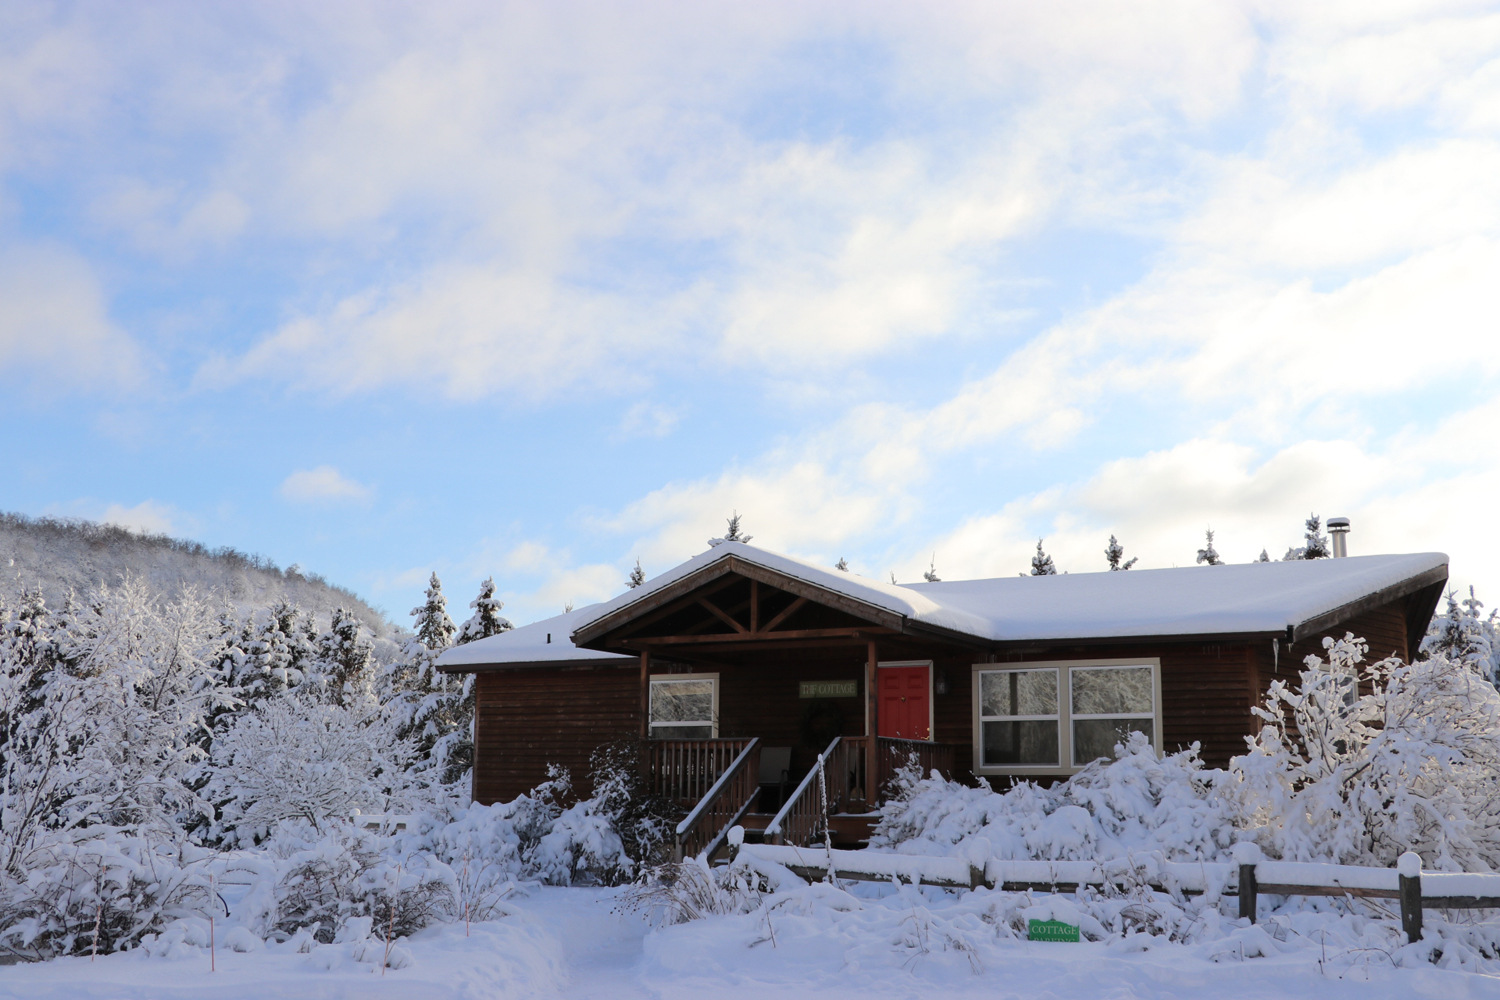 The Journey Inn During a Winter Snow